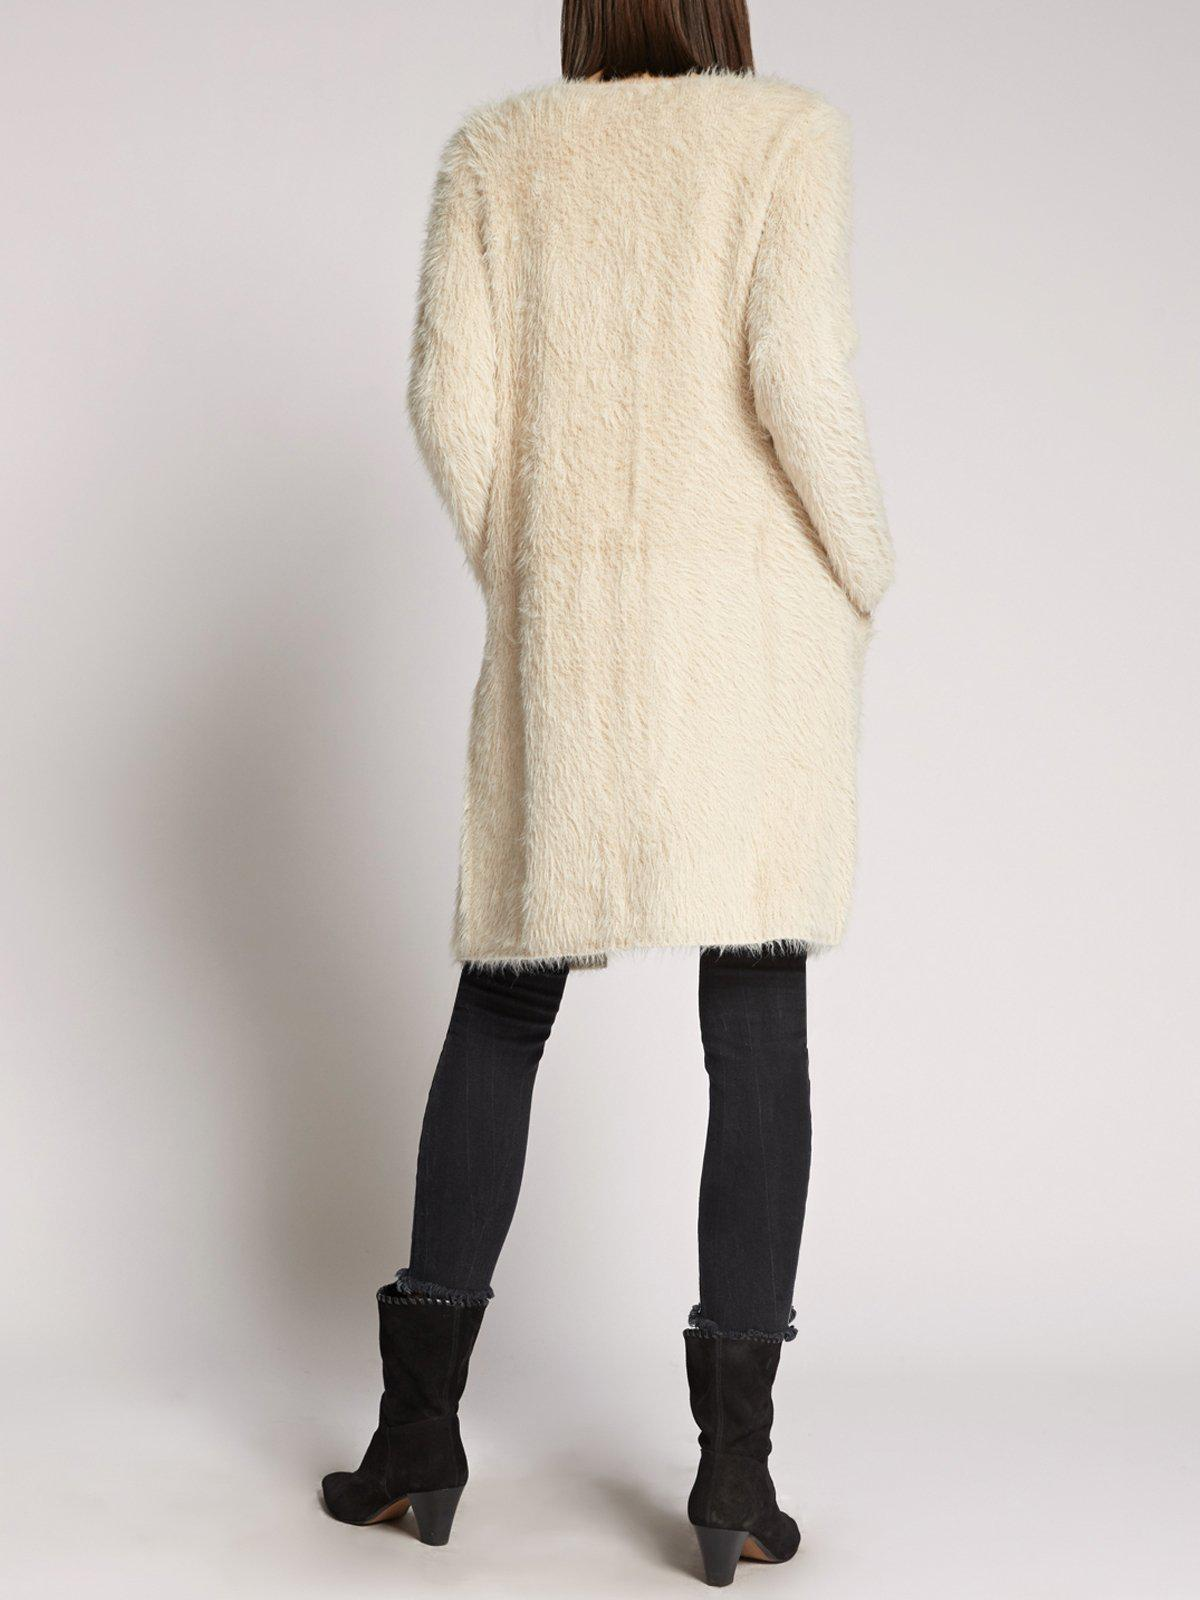 9a0556d7774e Lyst - Sanctuary Clothing Super Soft City Coat in Natural